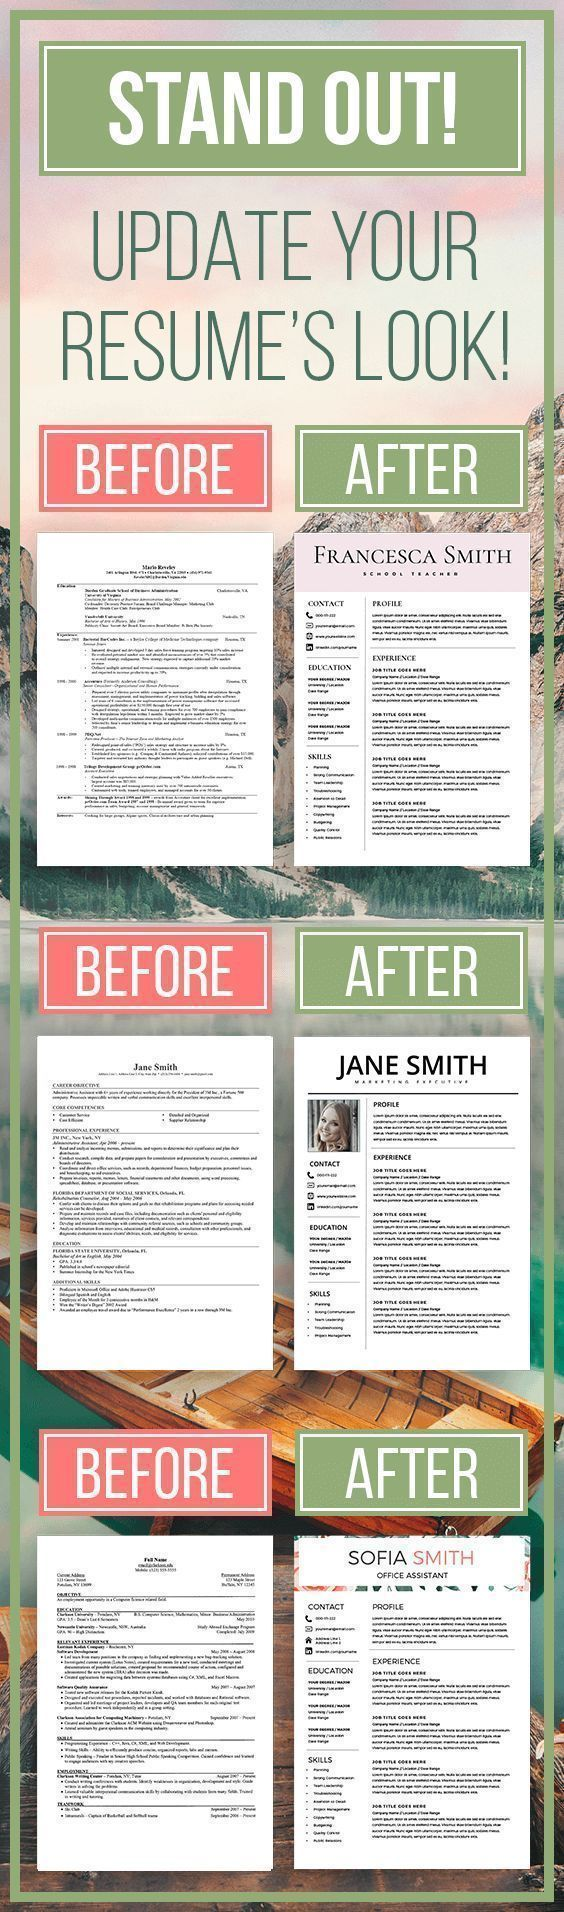 format resume writing%0A Top Resume Templates  creative cv templates  resume layout  professional cv  template  modern